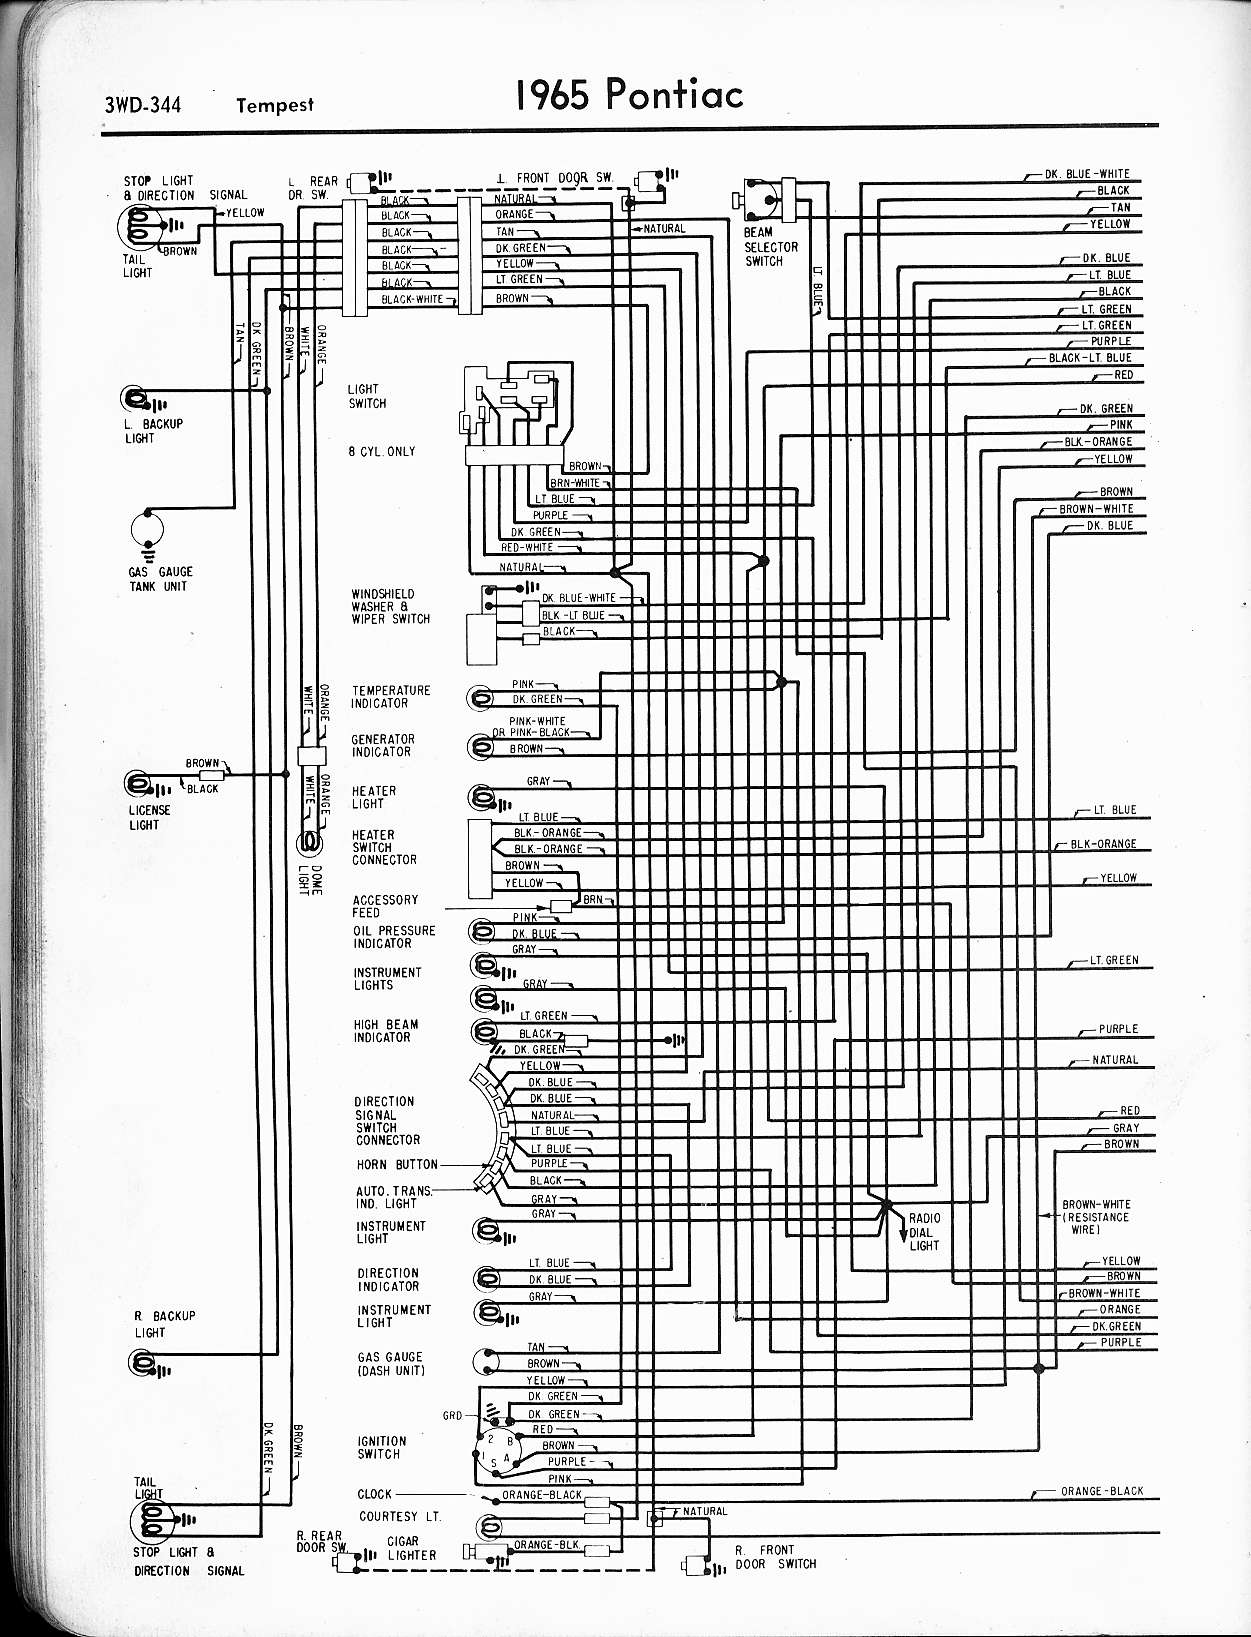 1970 Chevelle Radio Wiring - Wiring Diagram Content on